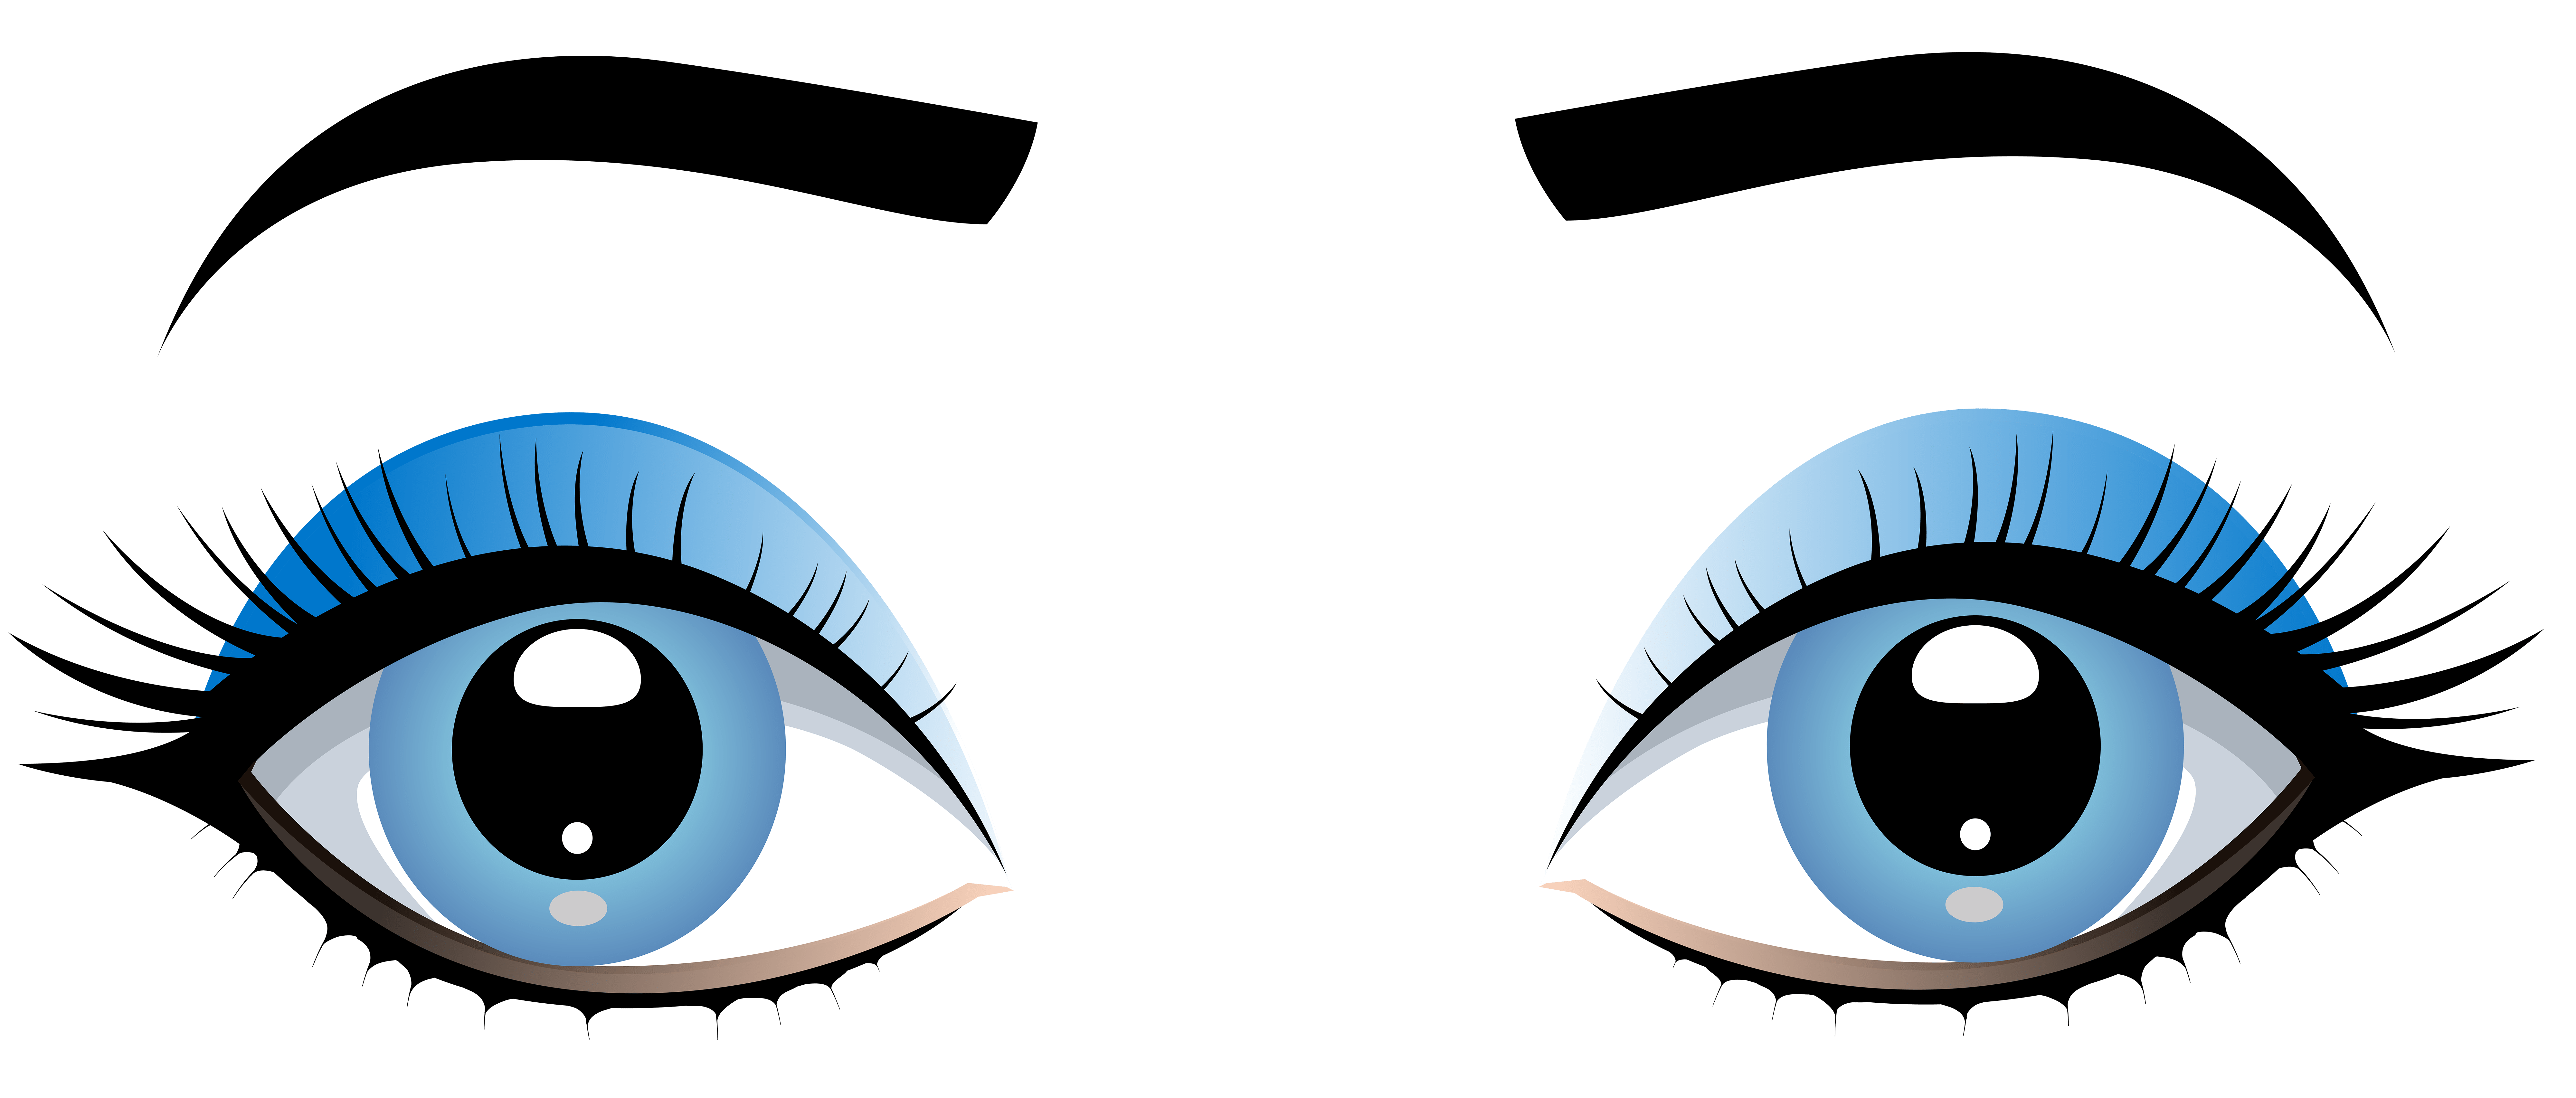 Free Animated Fireplace Wallpaper Blue Female Eyes With Eyebrows Png Clip Art Best Web Clipart